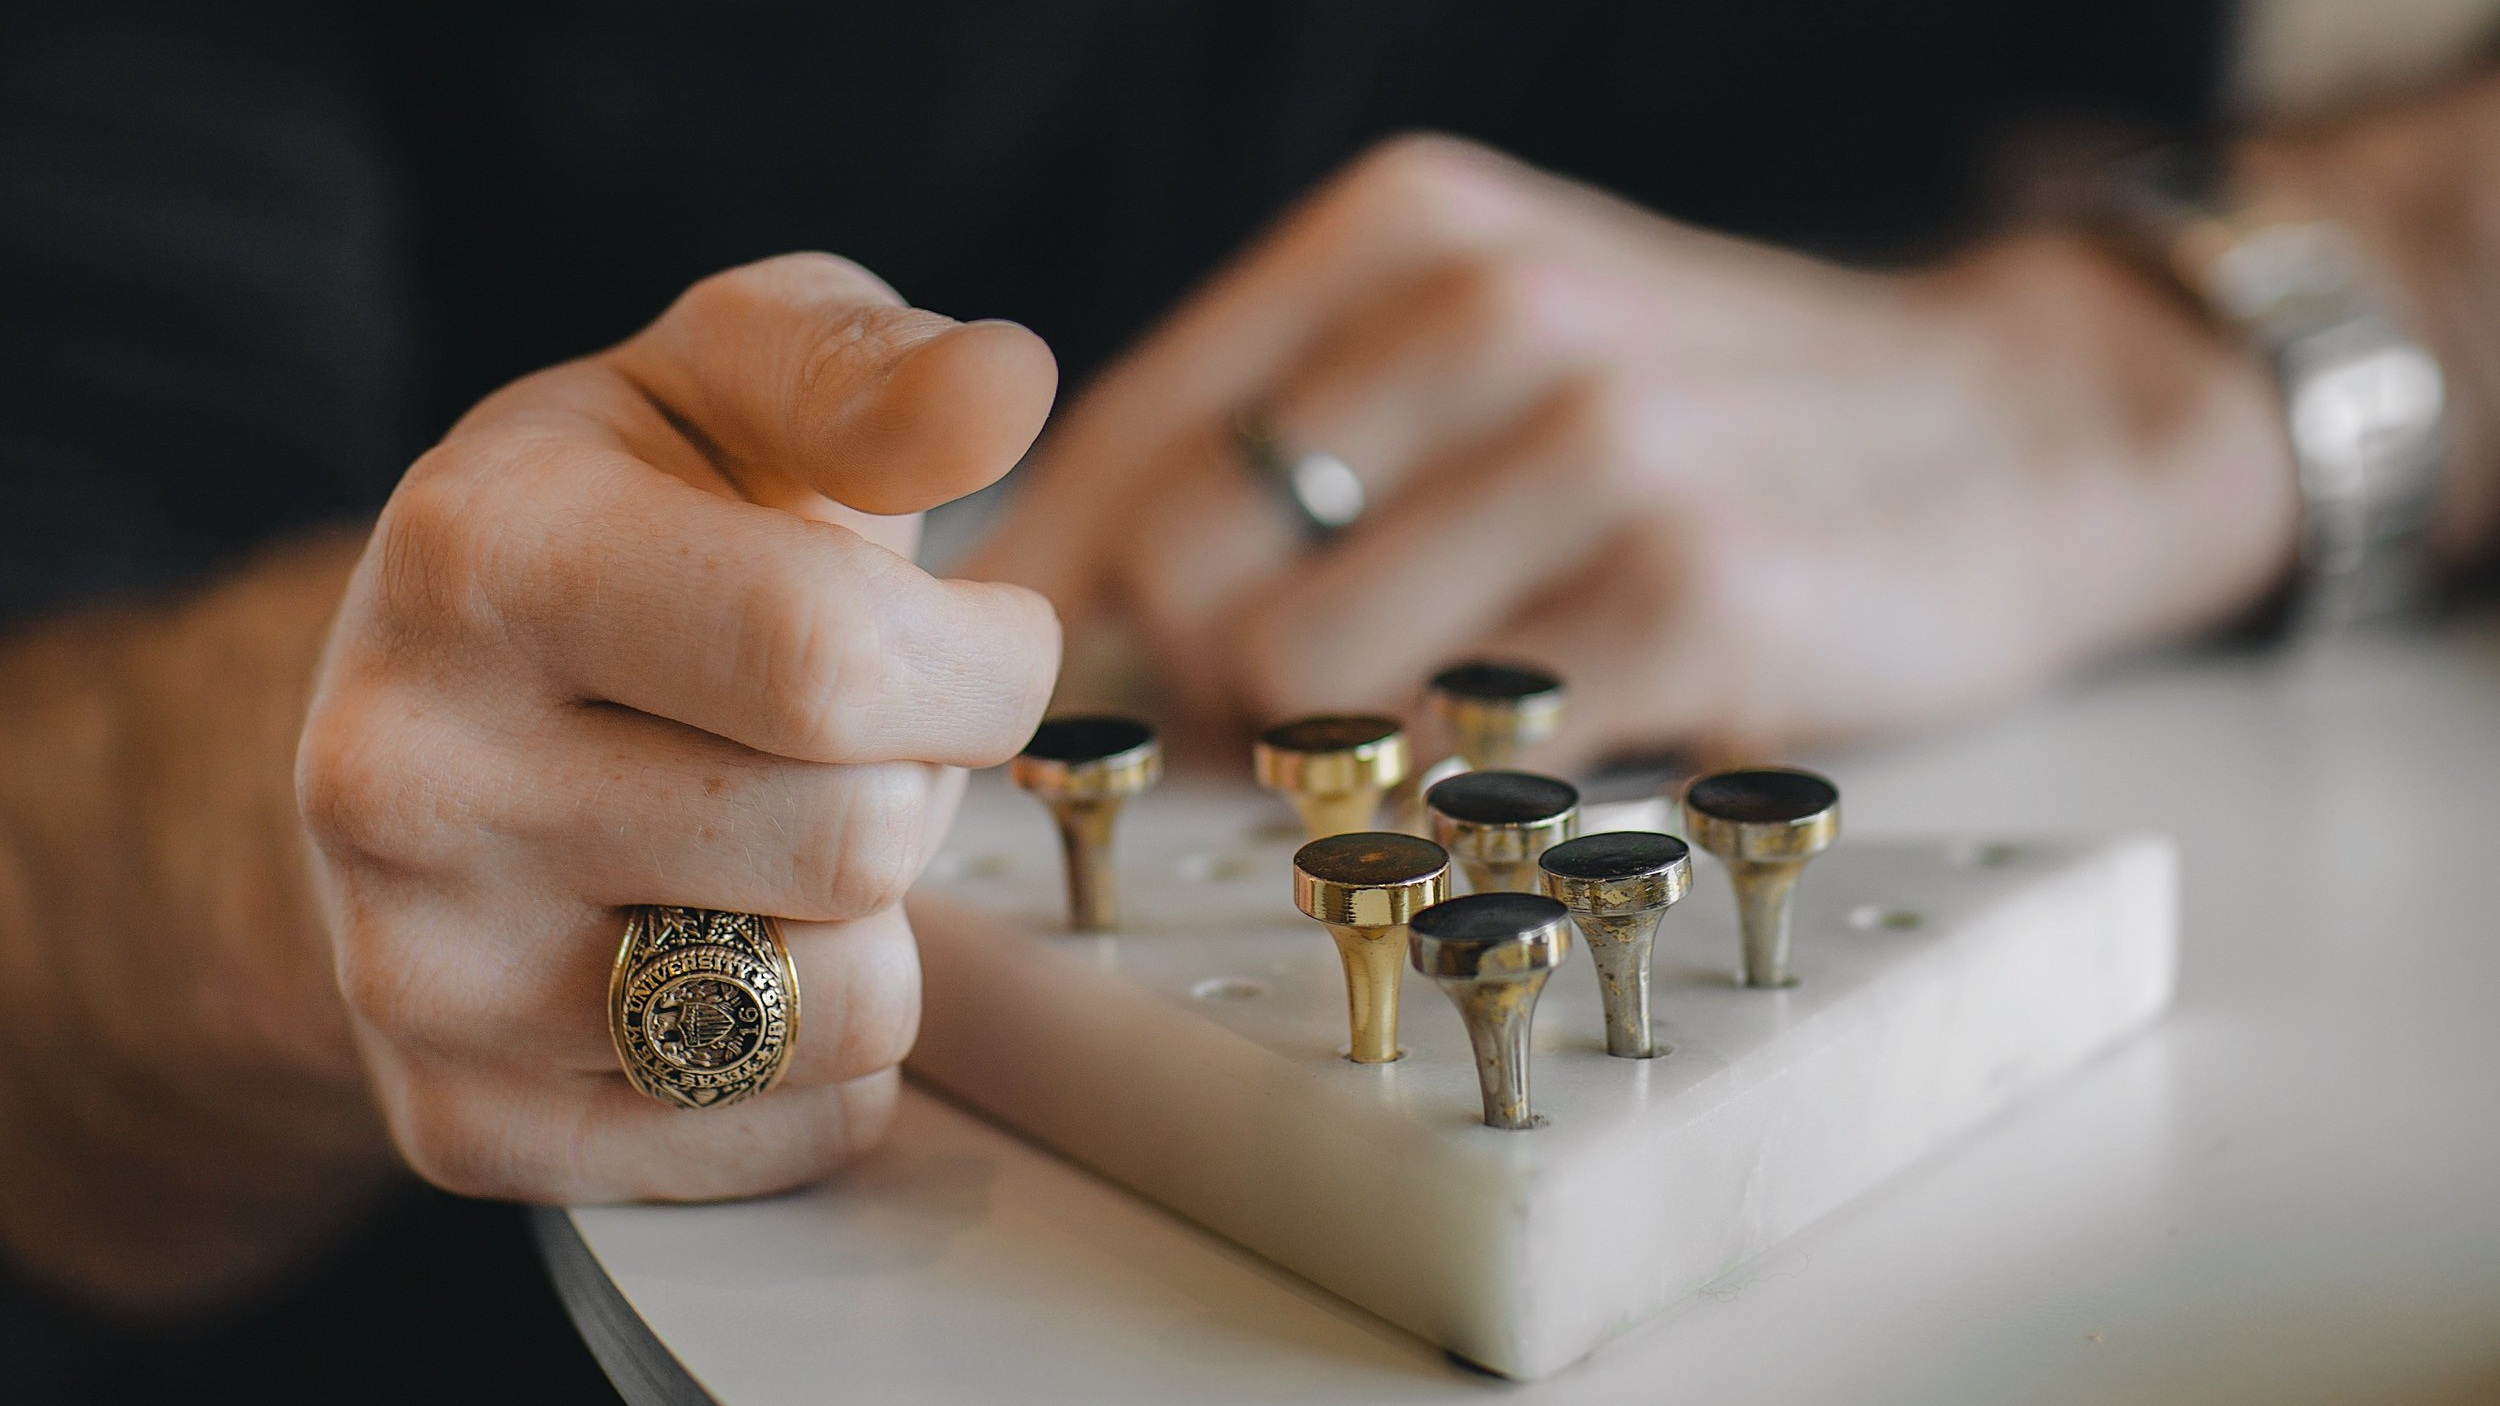 RING NATIONs. - SHOP NOW